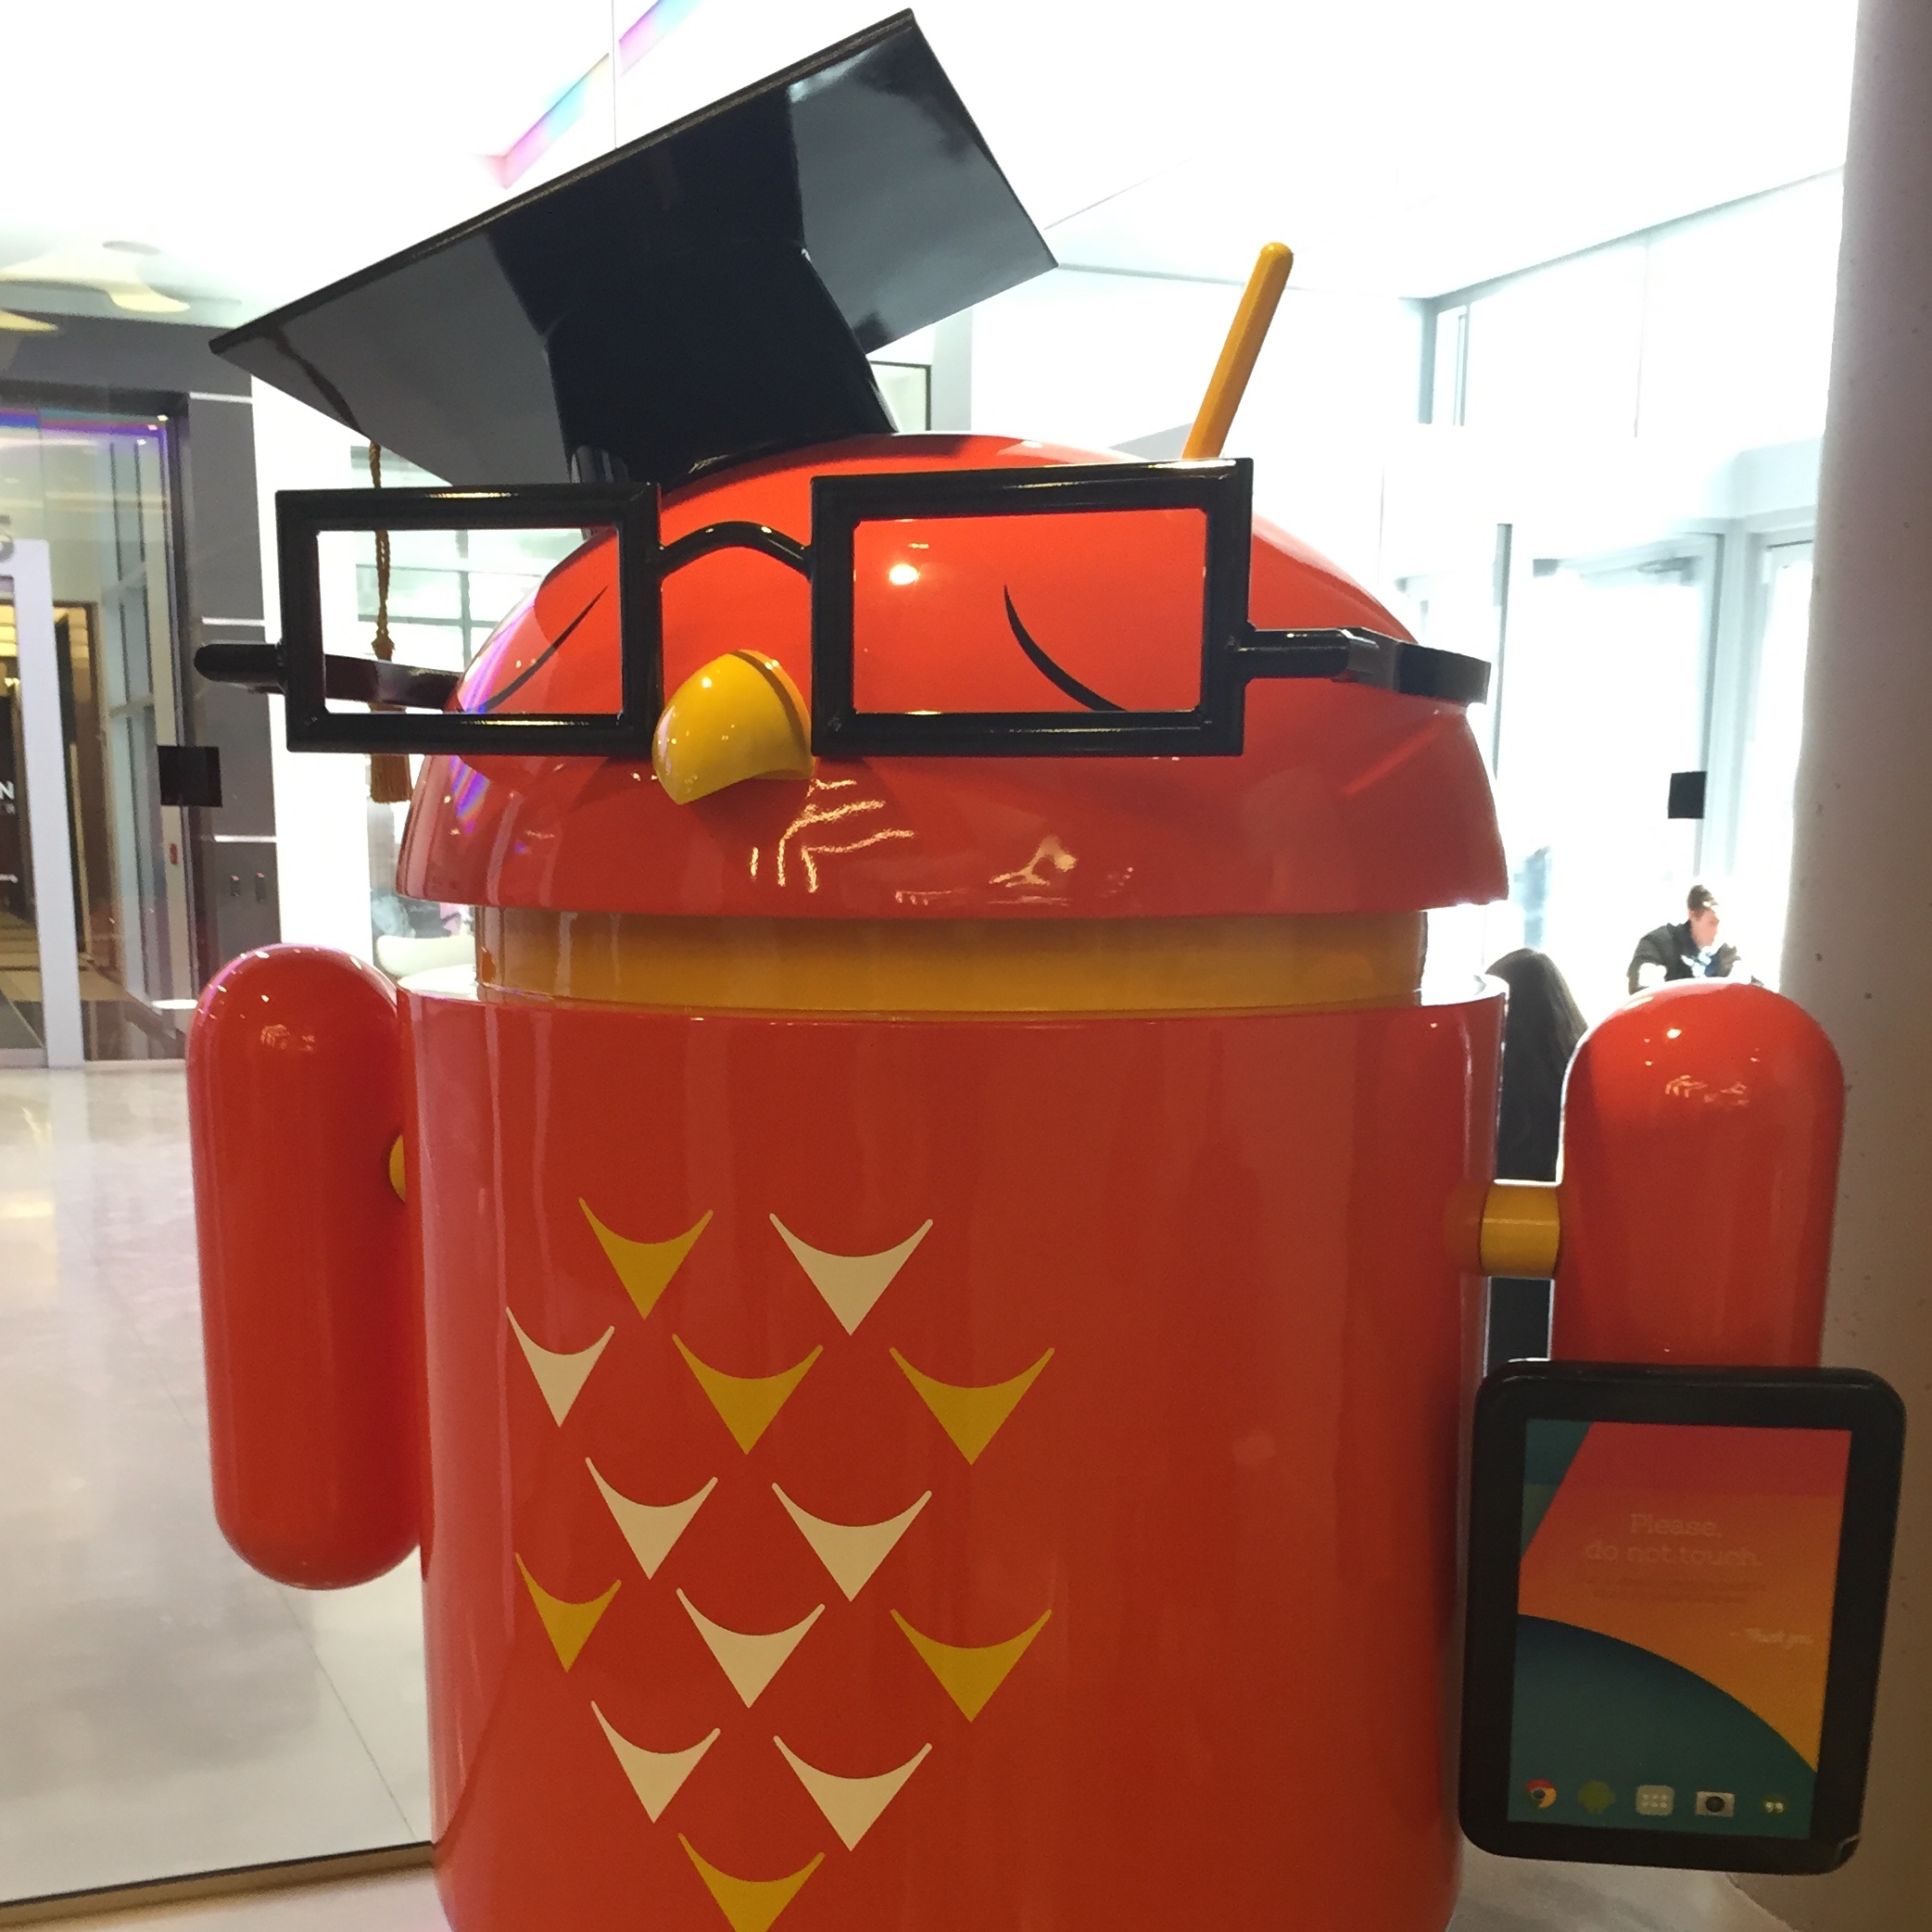 An academic Android greeted us at Google's Cambridge office.